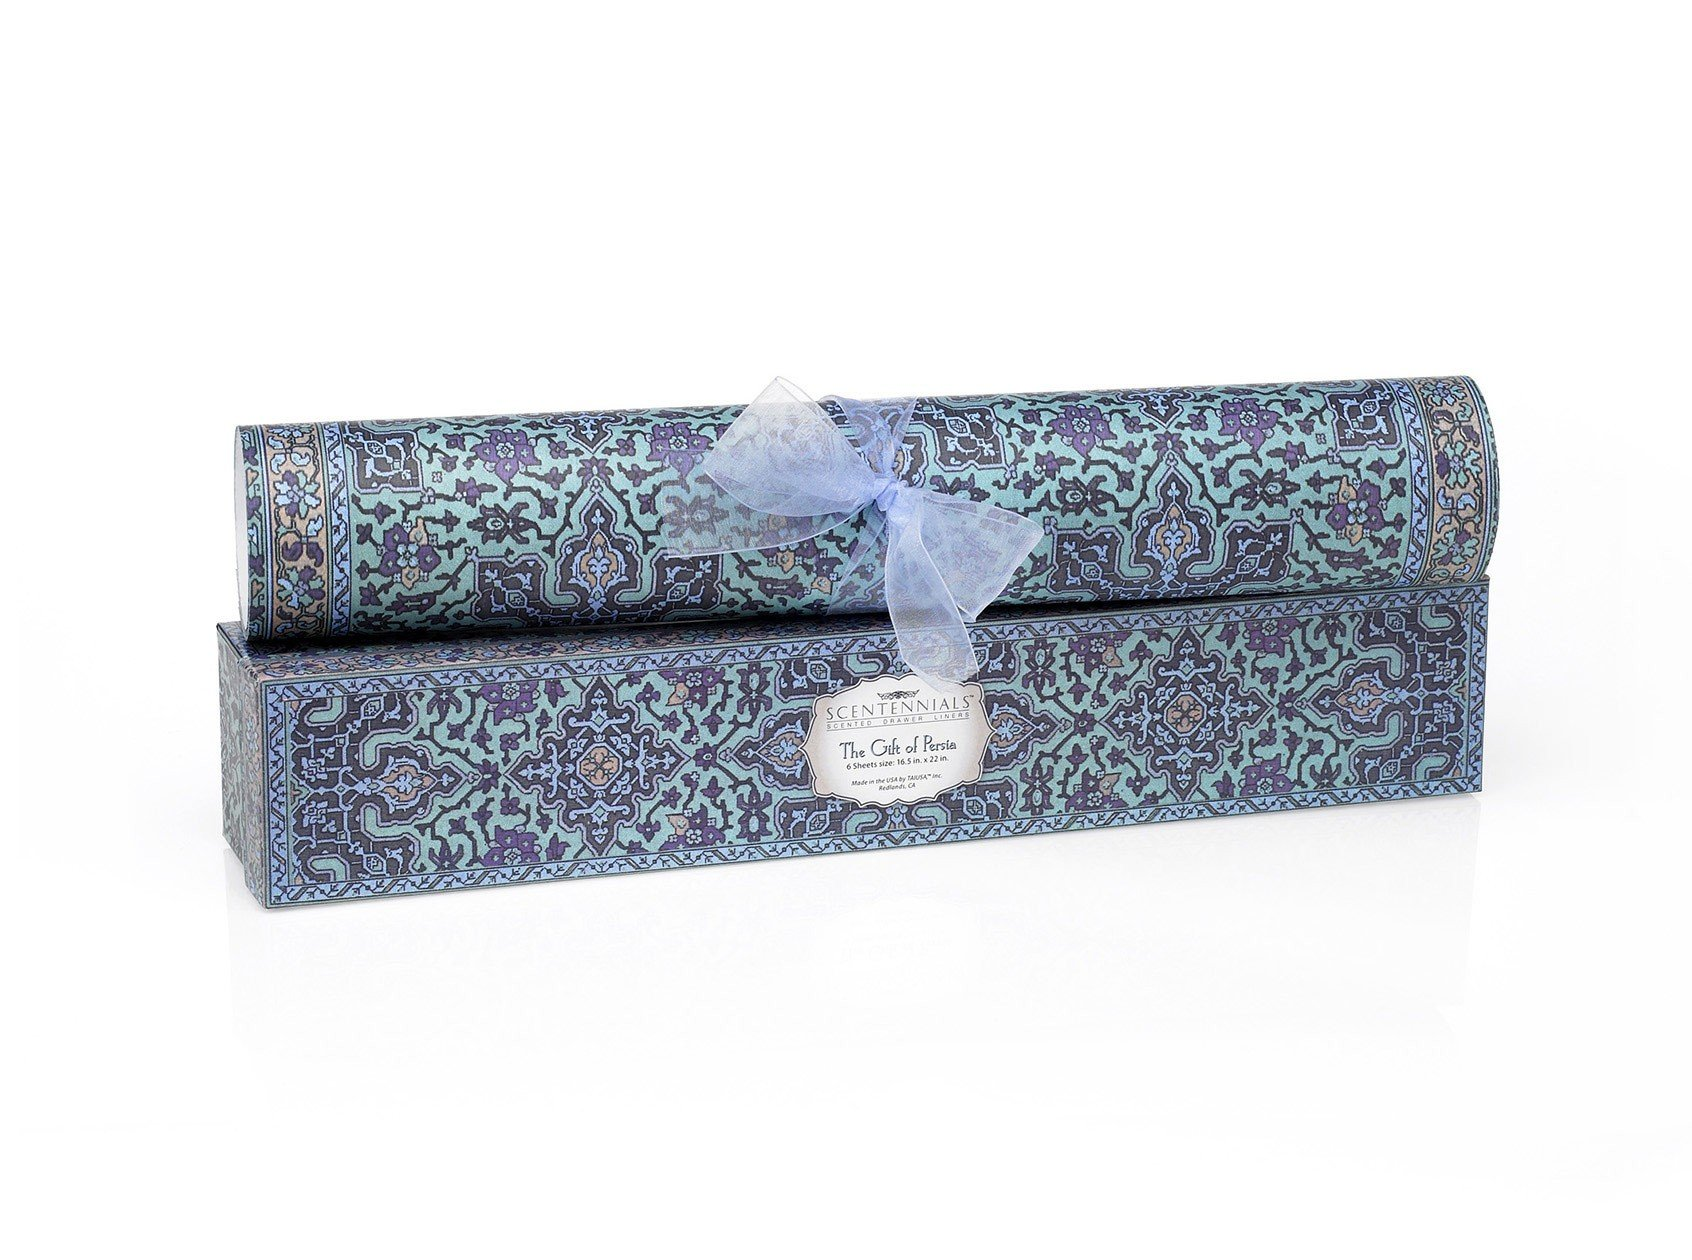 Scentennials Gift of Persia (12 Sheets) Scented Drawer Liners by Scentennials Scented Drawer Liners